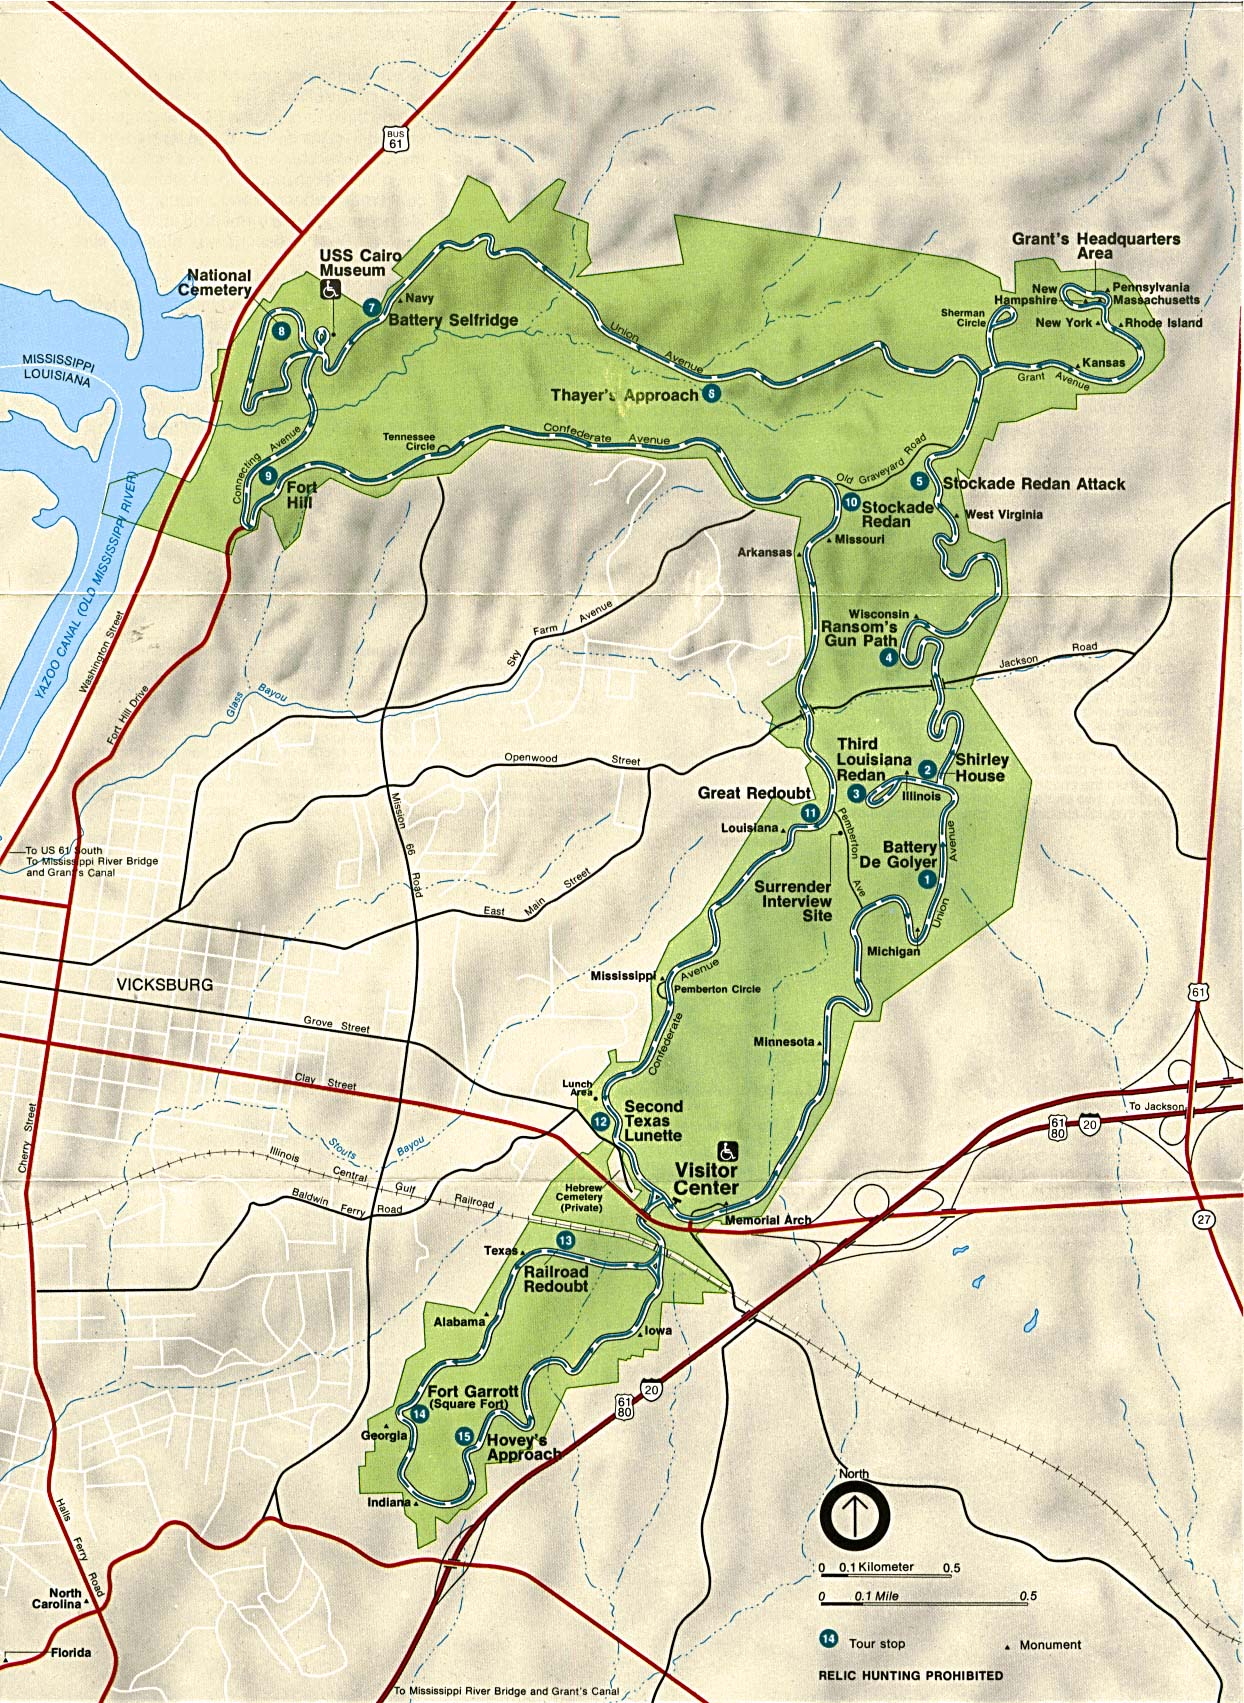 Maps of United States National Parks, Monuments and Historic Sites Vicksburg National Military Park [Mississippi] (Area Map) 1994 (507K)